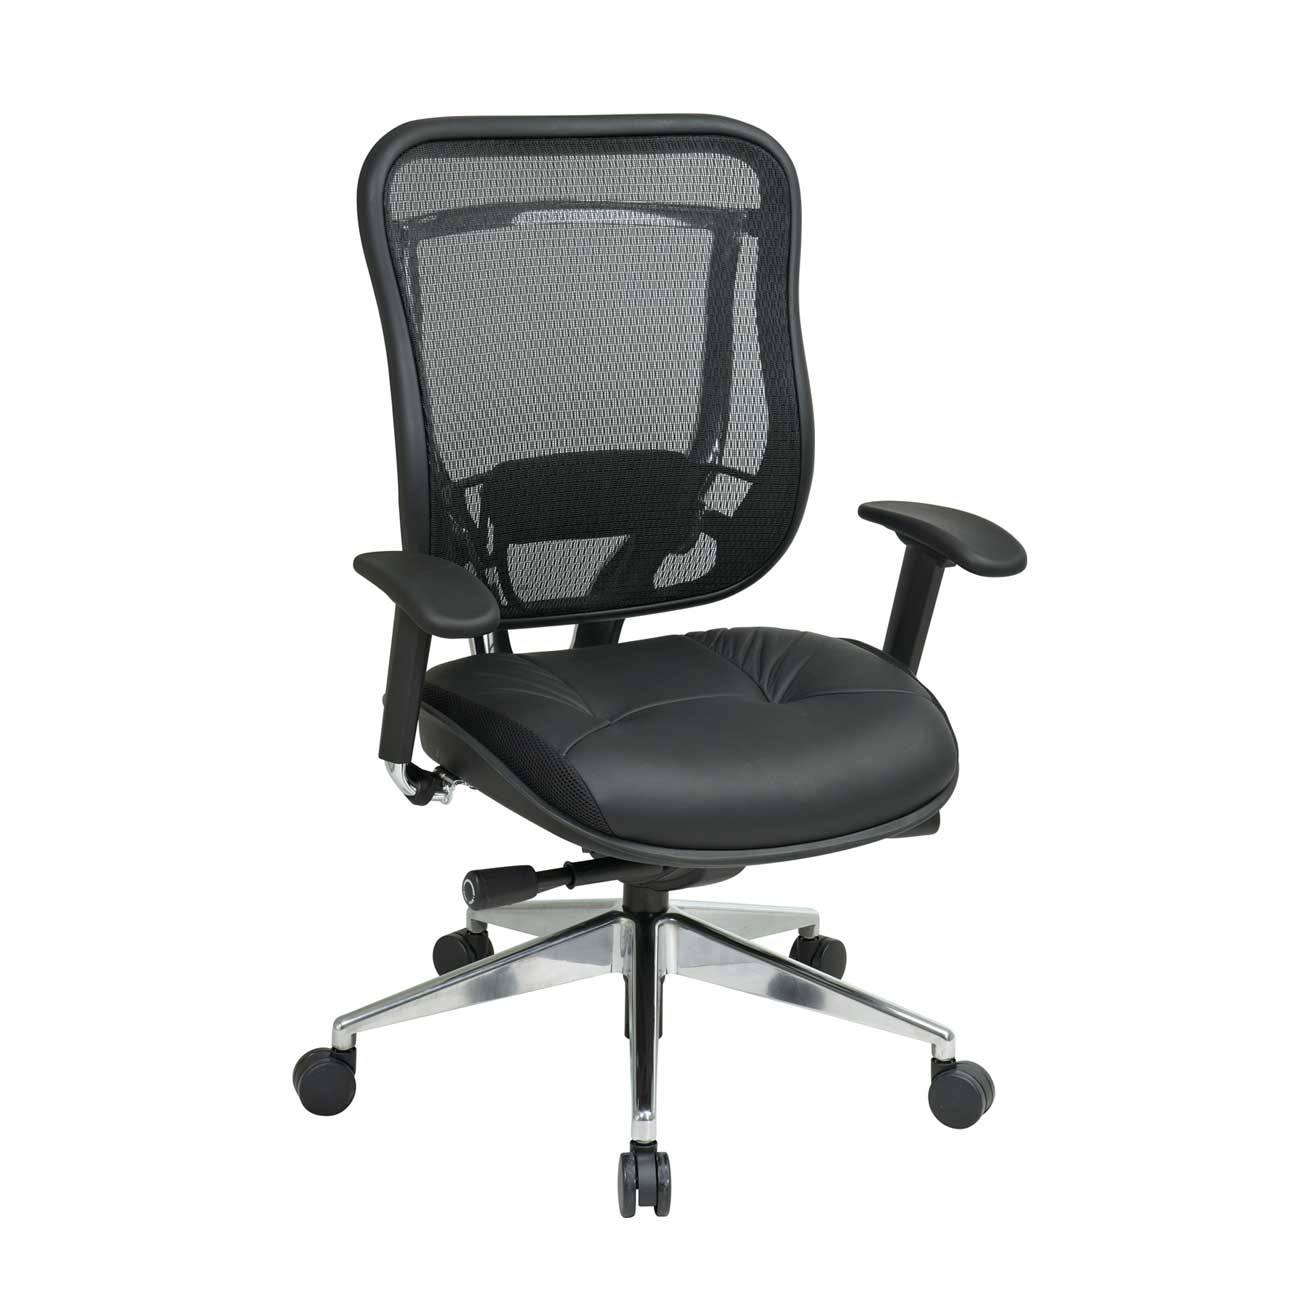 High End Office Chairs for Elegant Design